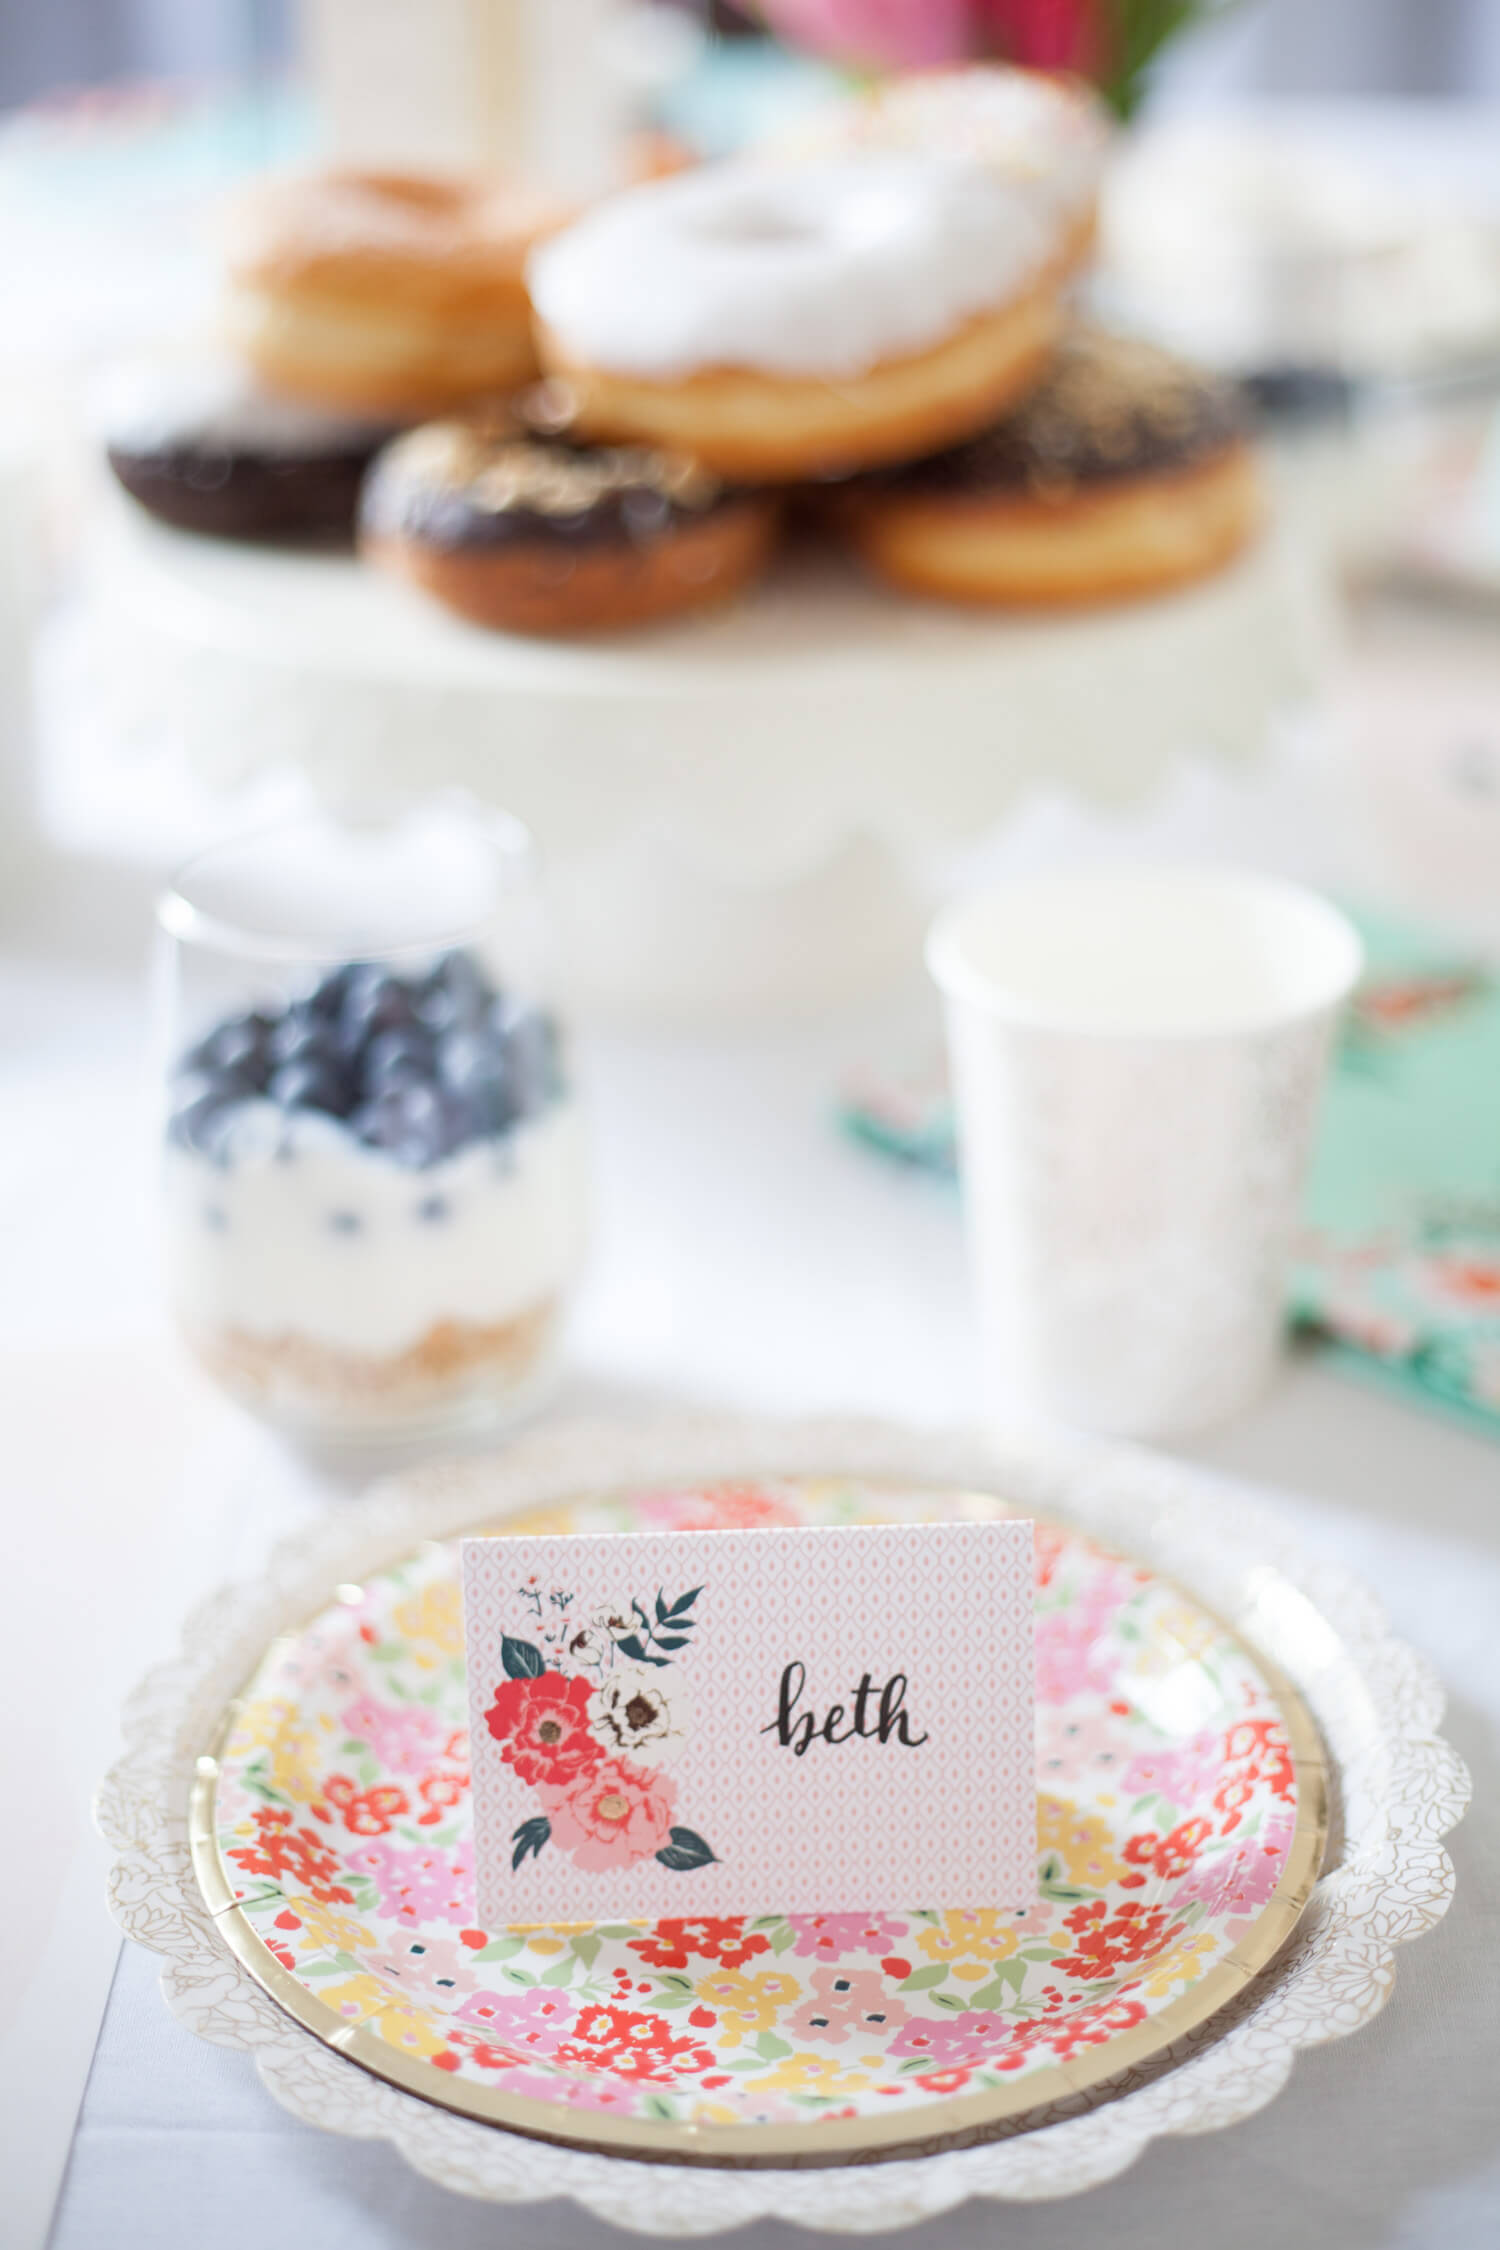 This easy tea party looks so fun! #Adulting, am I right?!